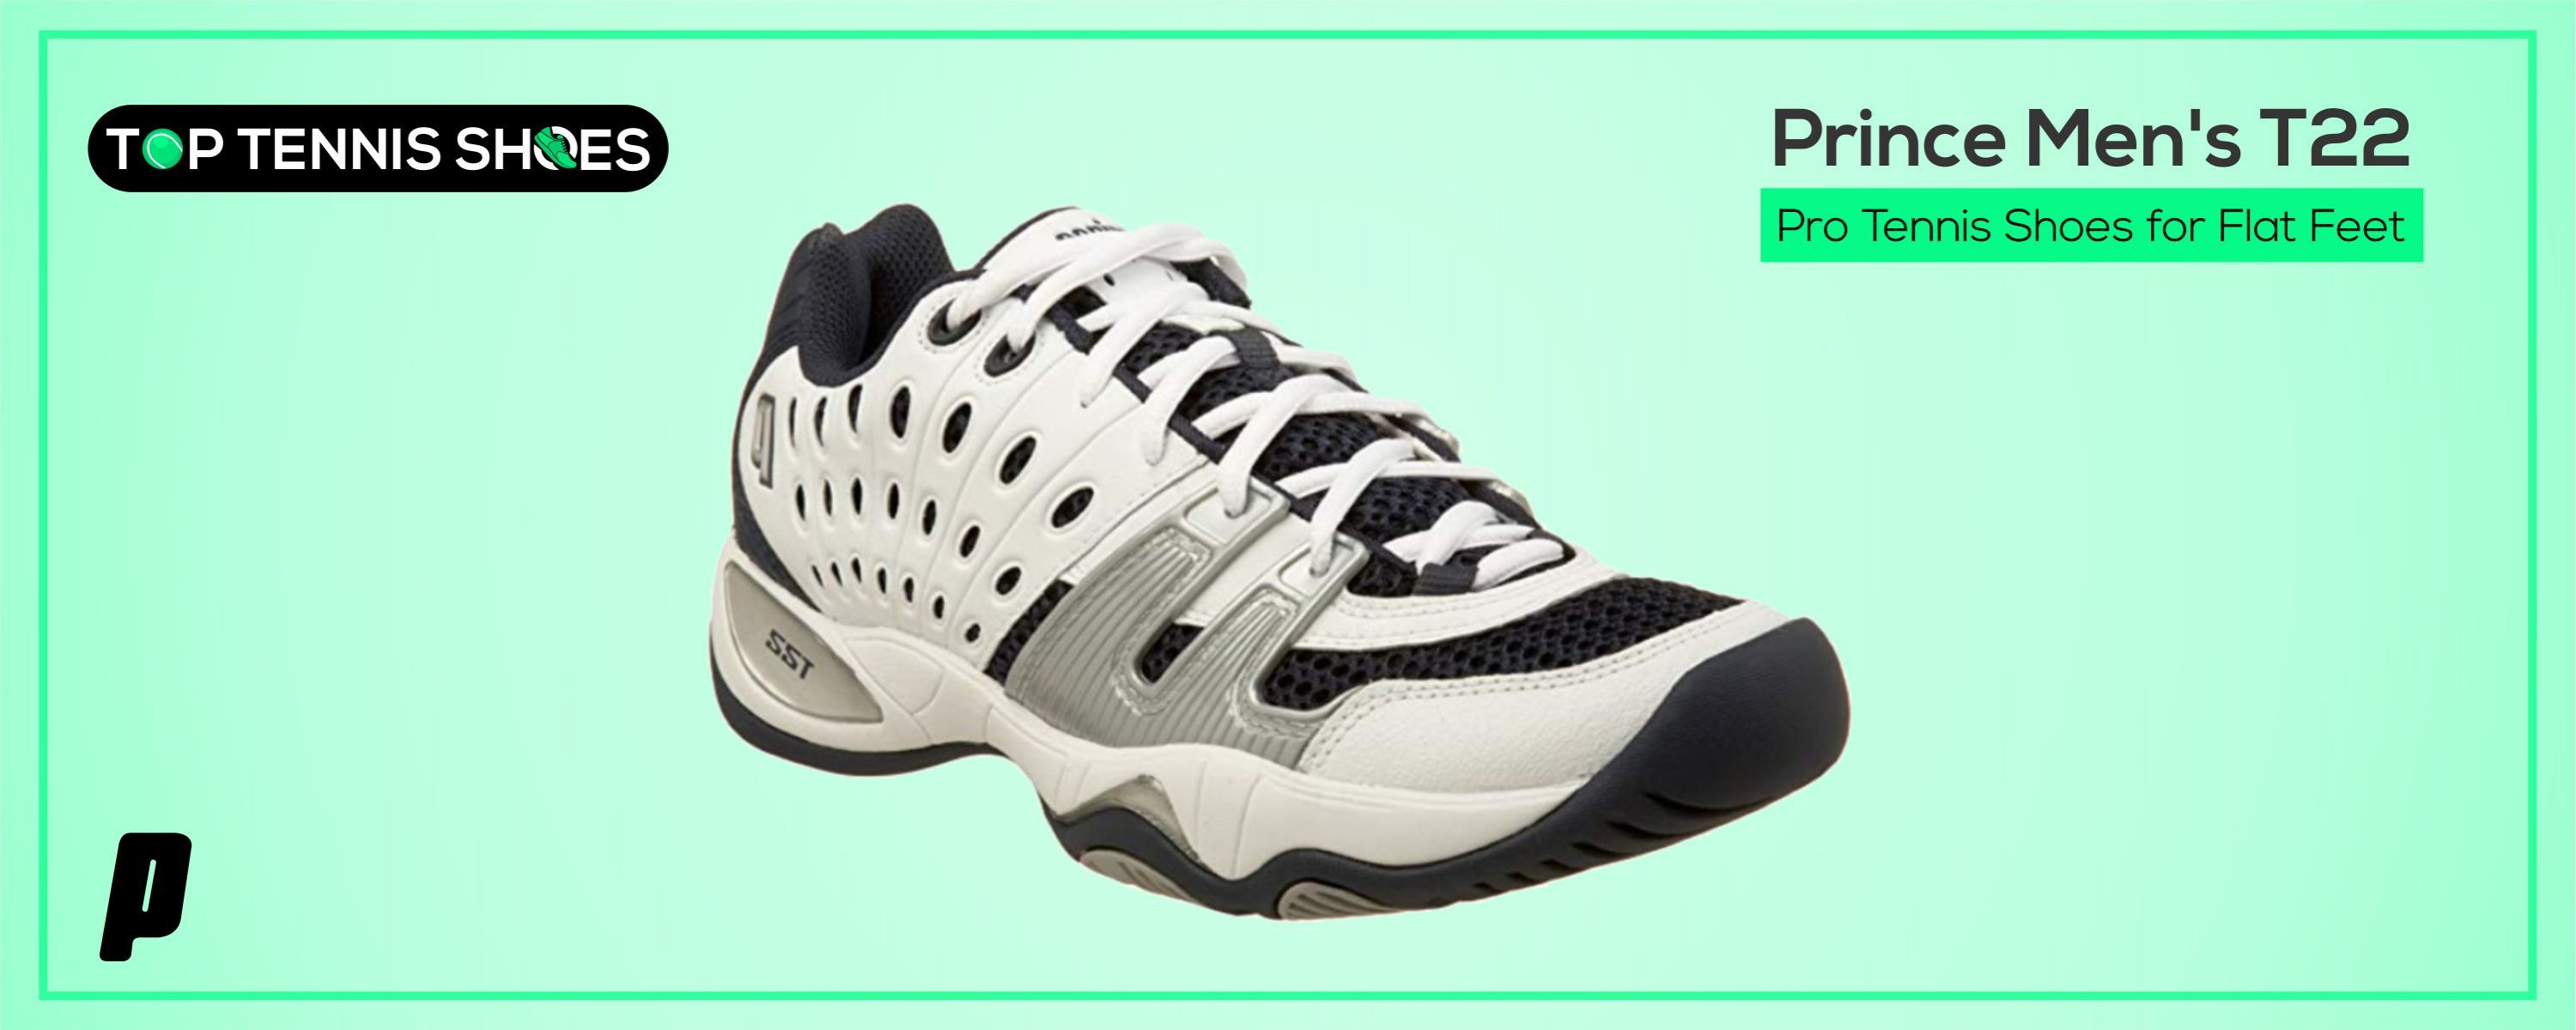 Best Tennis Shoes for flat feet 2019